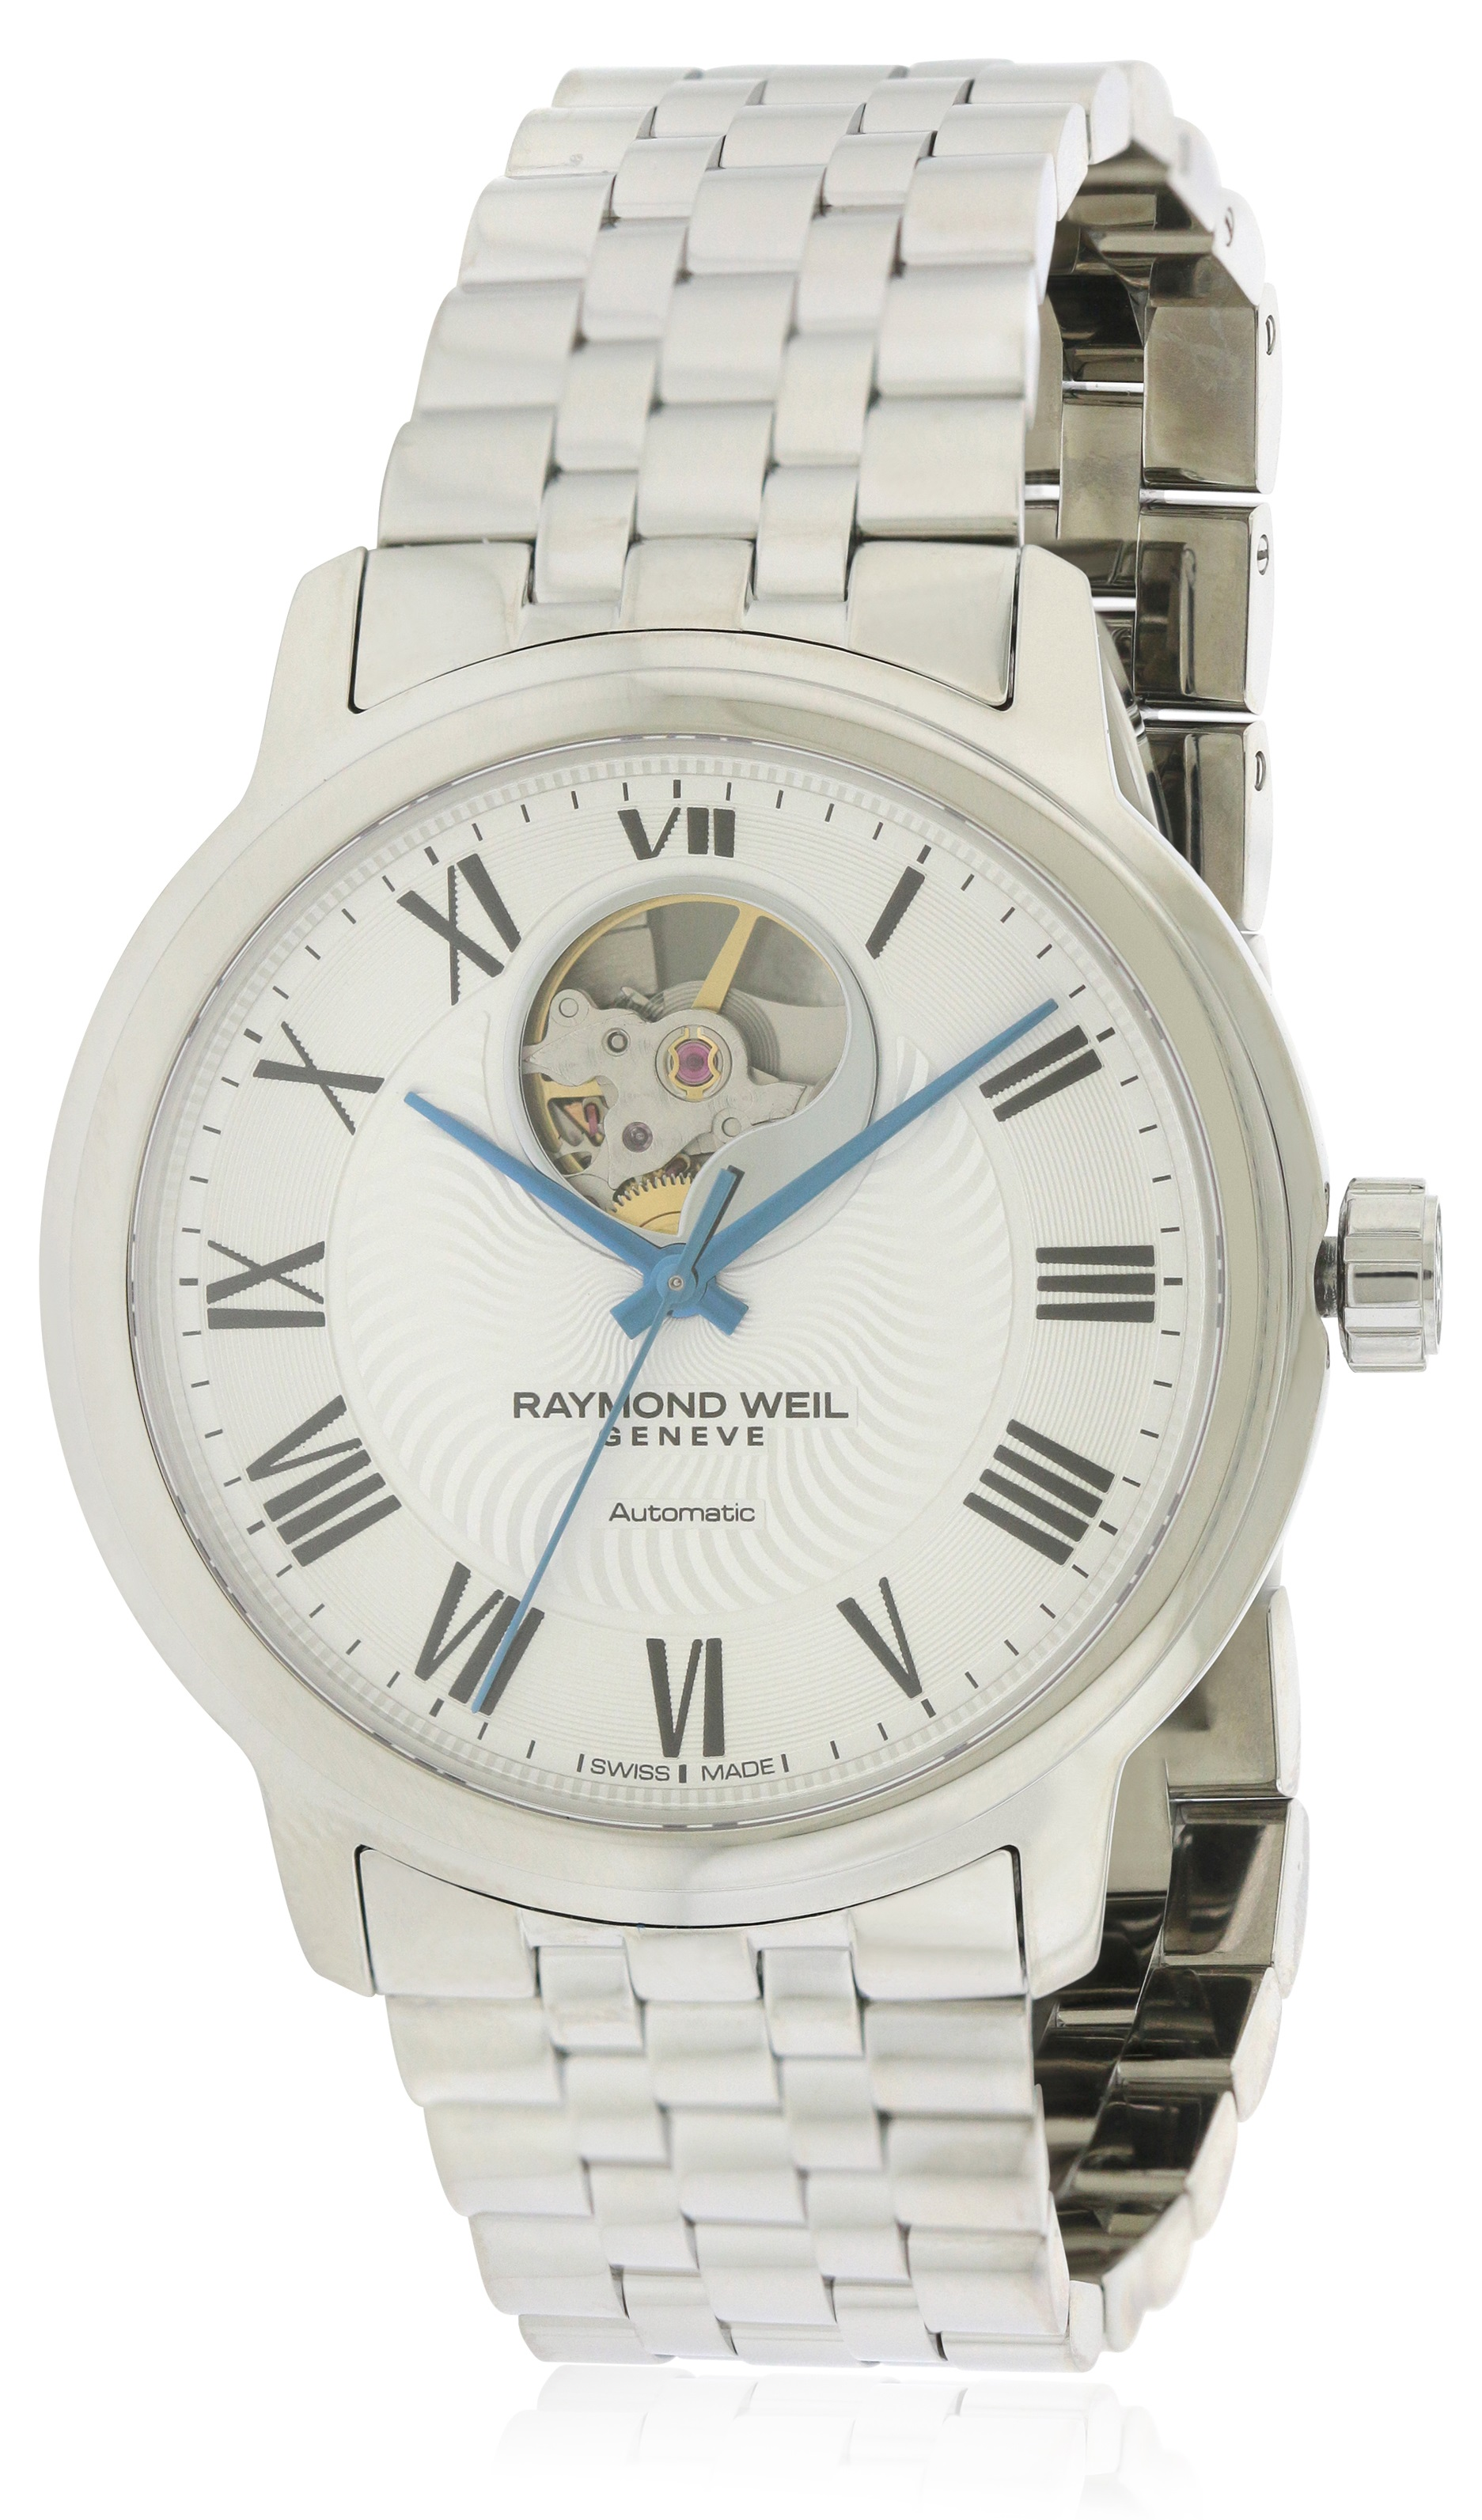 Discount Watch Store: Sitewide Watch Sale! Coupons Inside